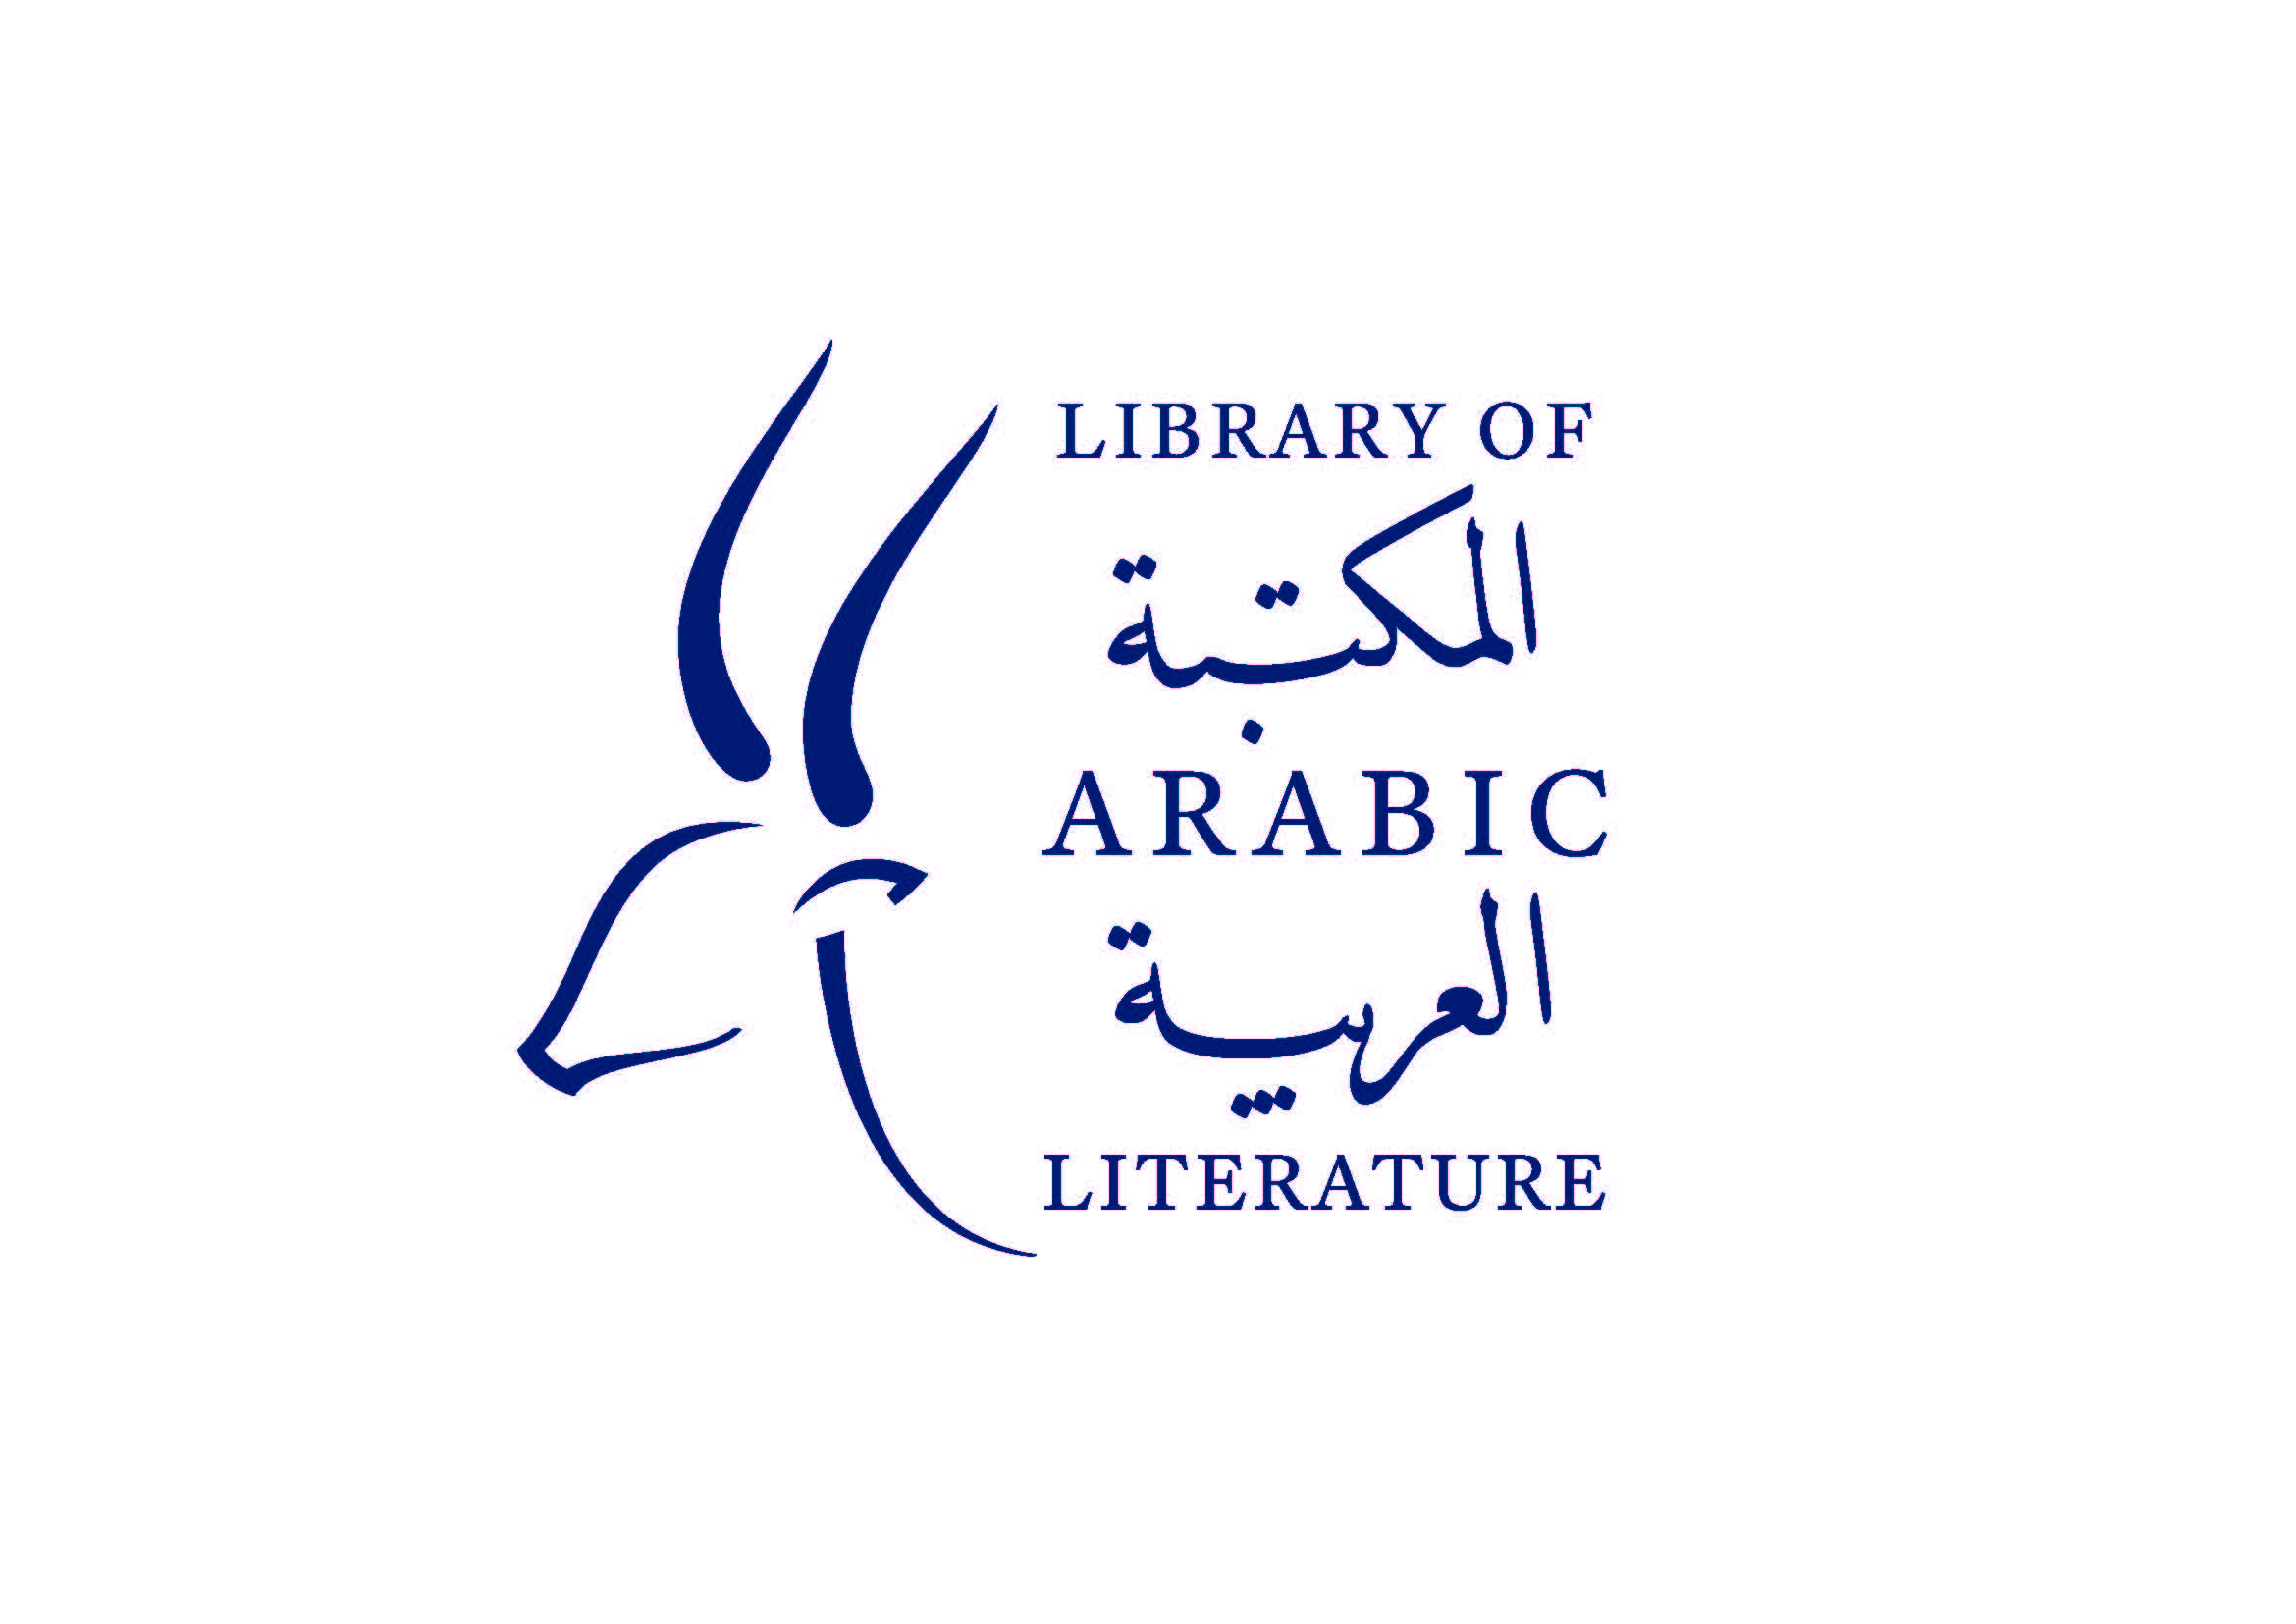 People - Library of Arabic Literature | Library of Arabic